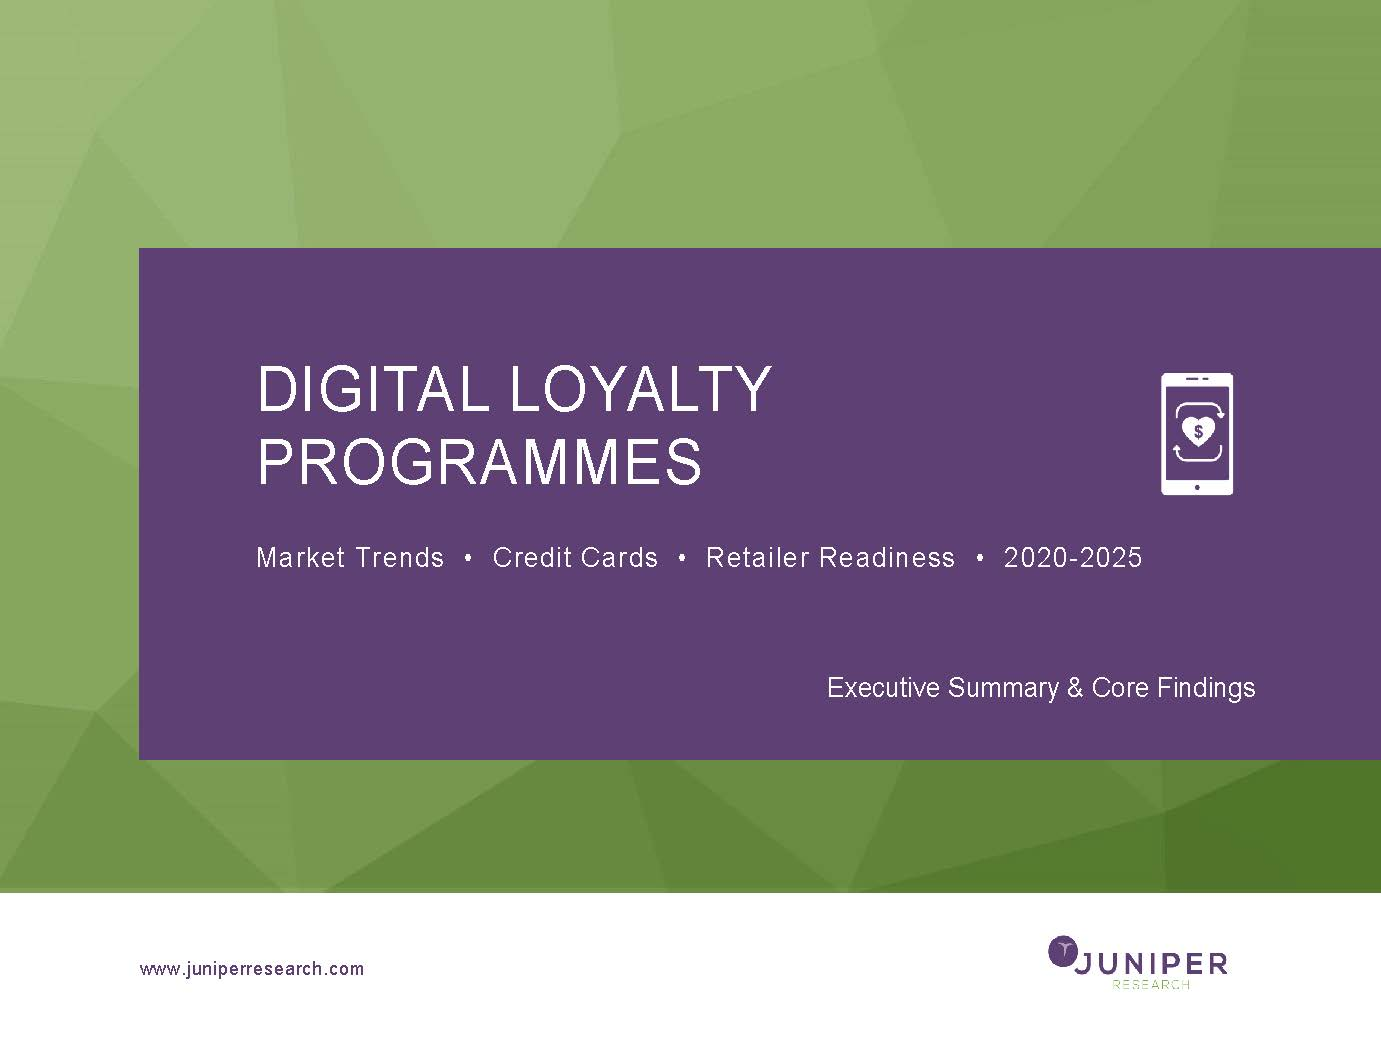 Digital Loyalty Programmes - Deep Dive Data & Forecasting - 2020-2025